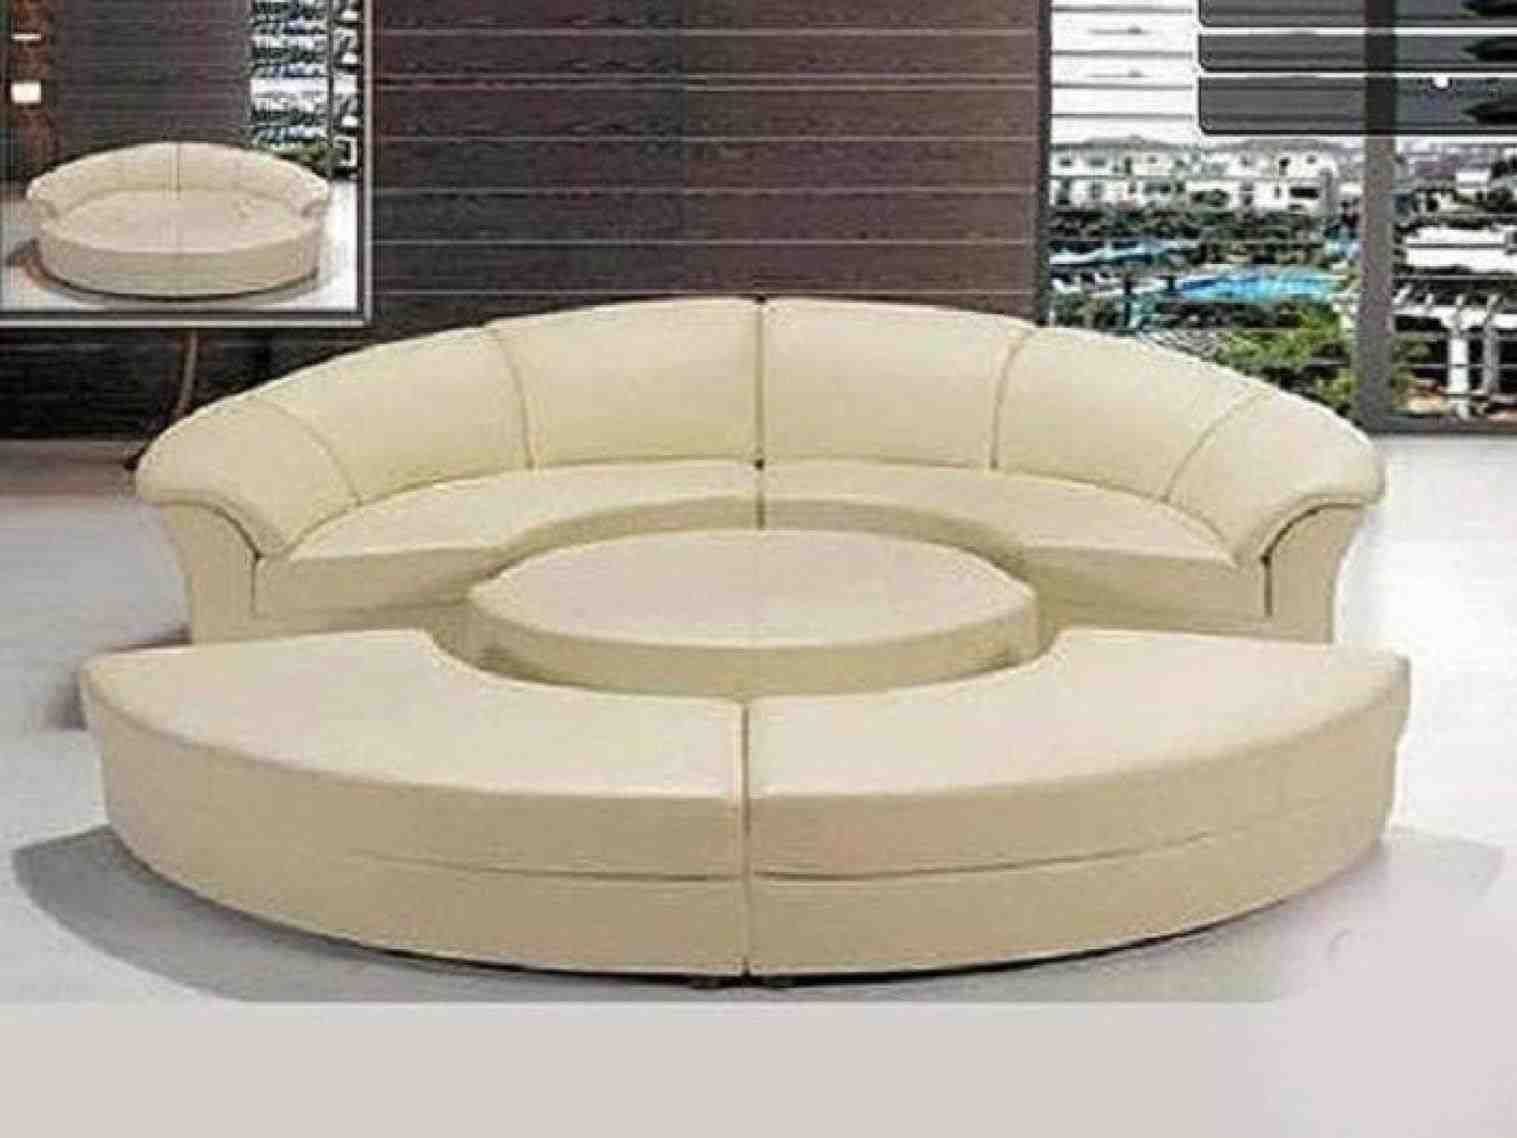 Cheap Loveseats And Sofas Excerpt Sofa Sectionals Cheap Price But Expensive Looking Sofa With Gentle Chocolate Colou Round Sofa Round Couch Round Sofa Chair